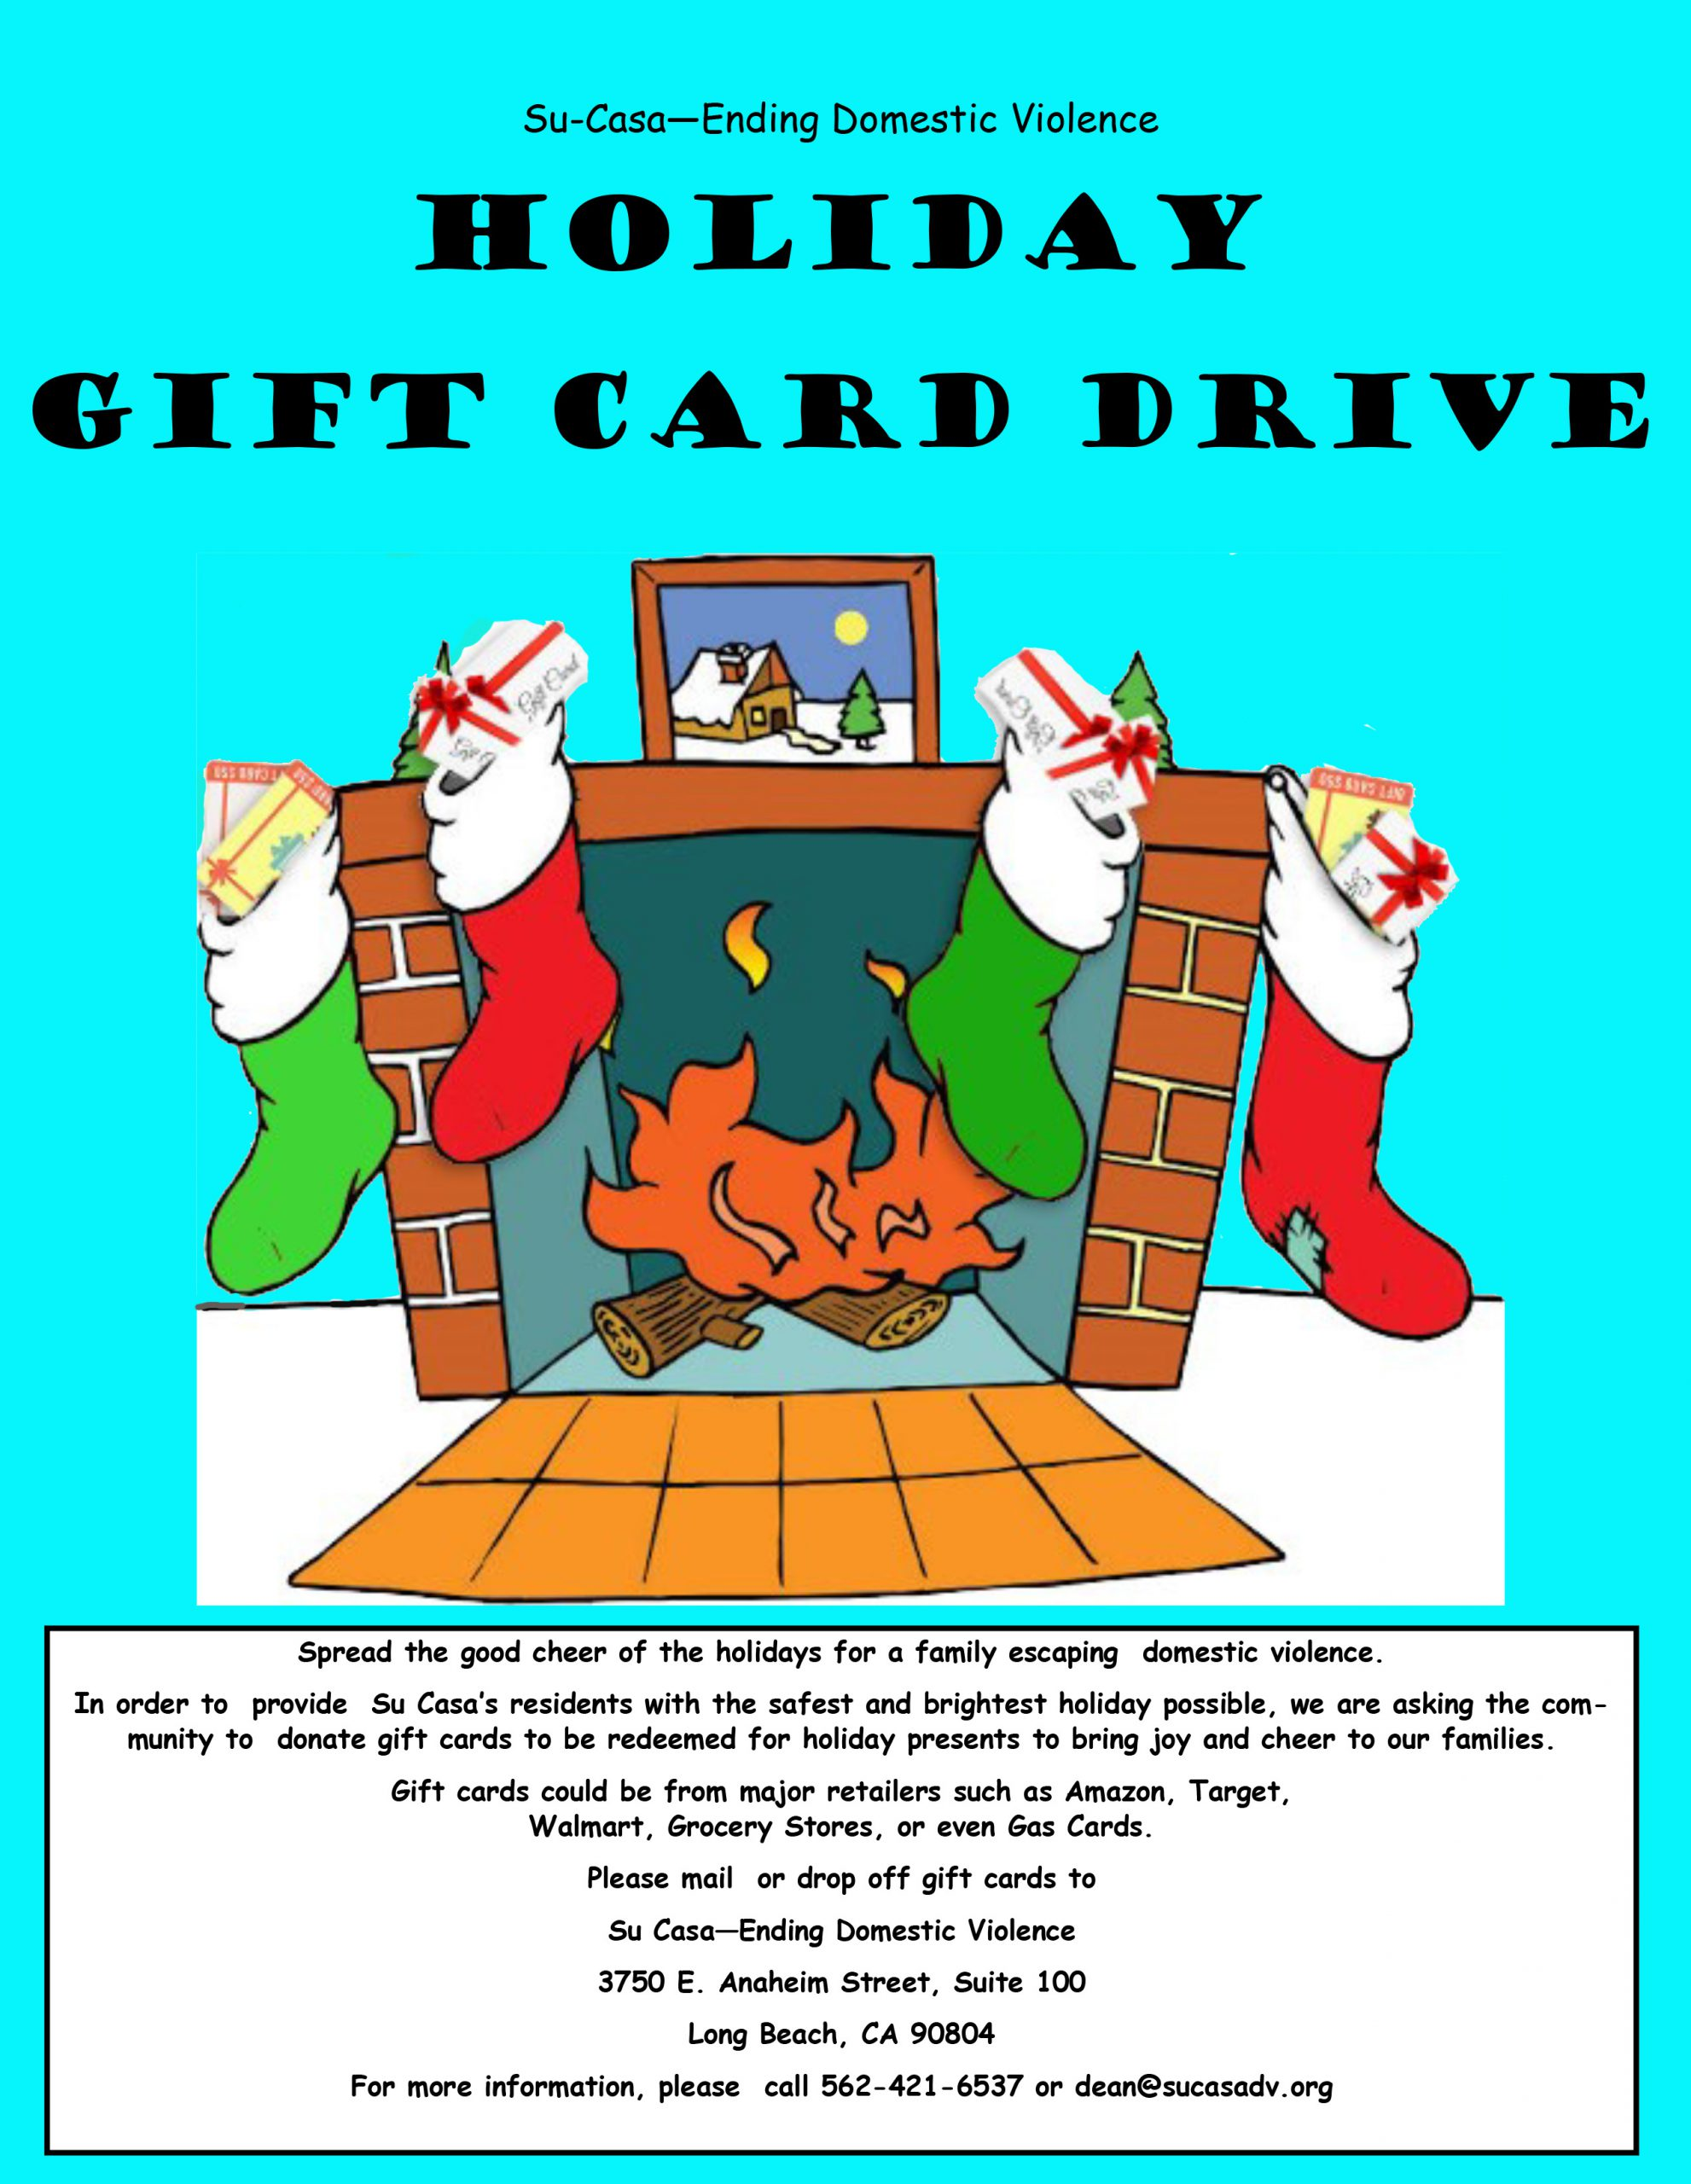 Holiday Gift Card Drive